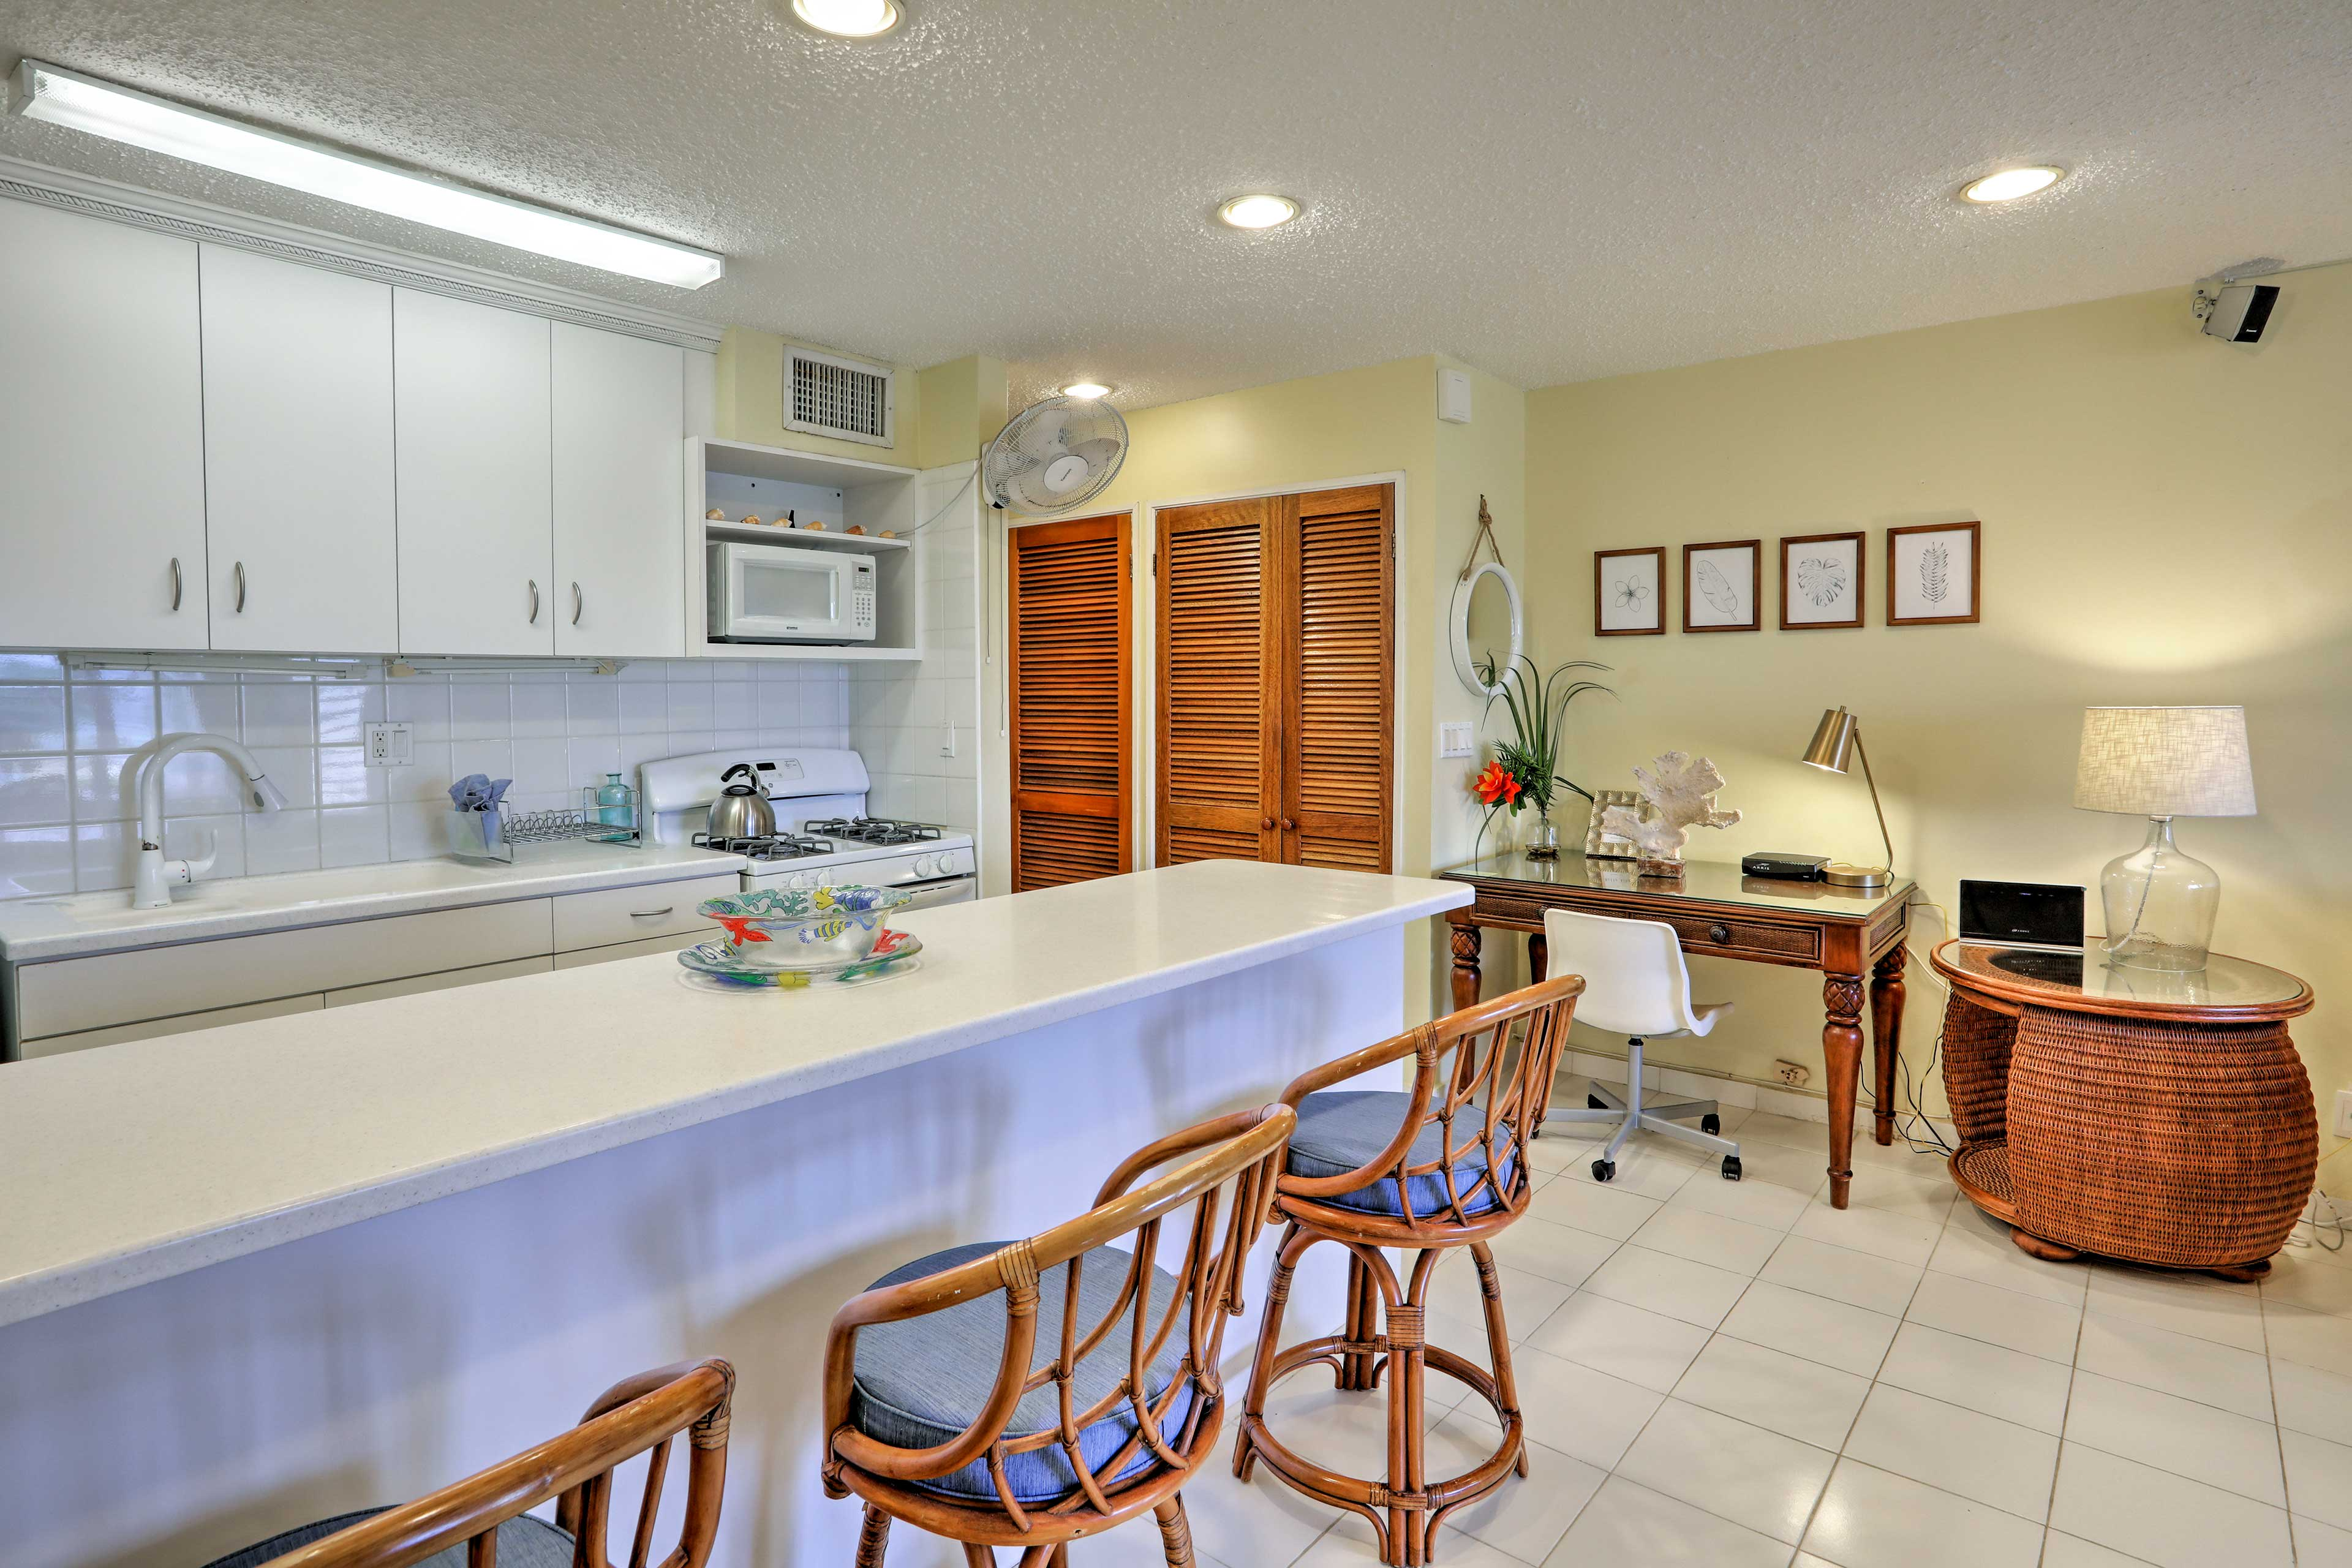 Crisp white counters & cabinetry is featured in the fully equipped kitchen.